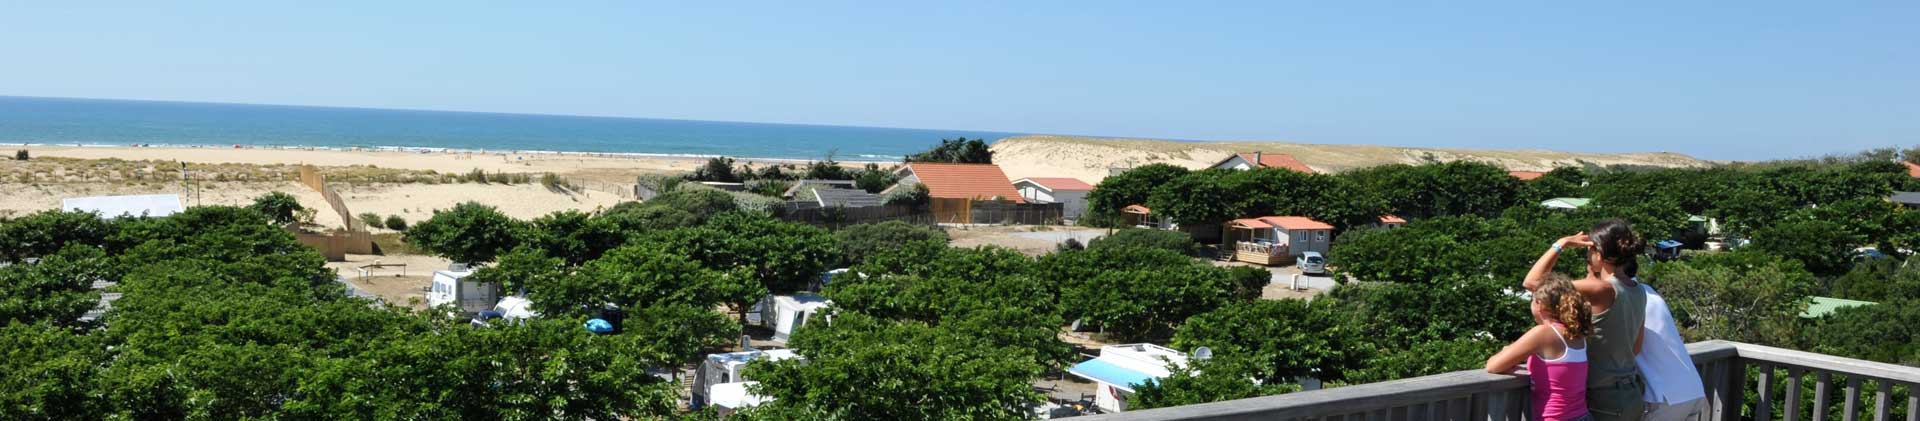 Camping landes location mobil home camping avec piscine for Camping dans les landes avec piscine